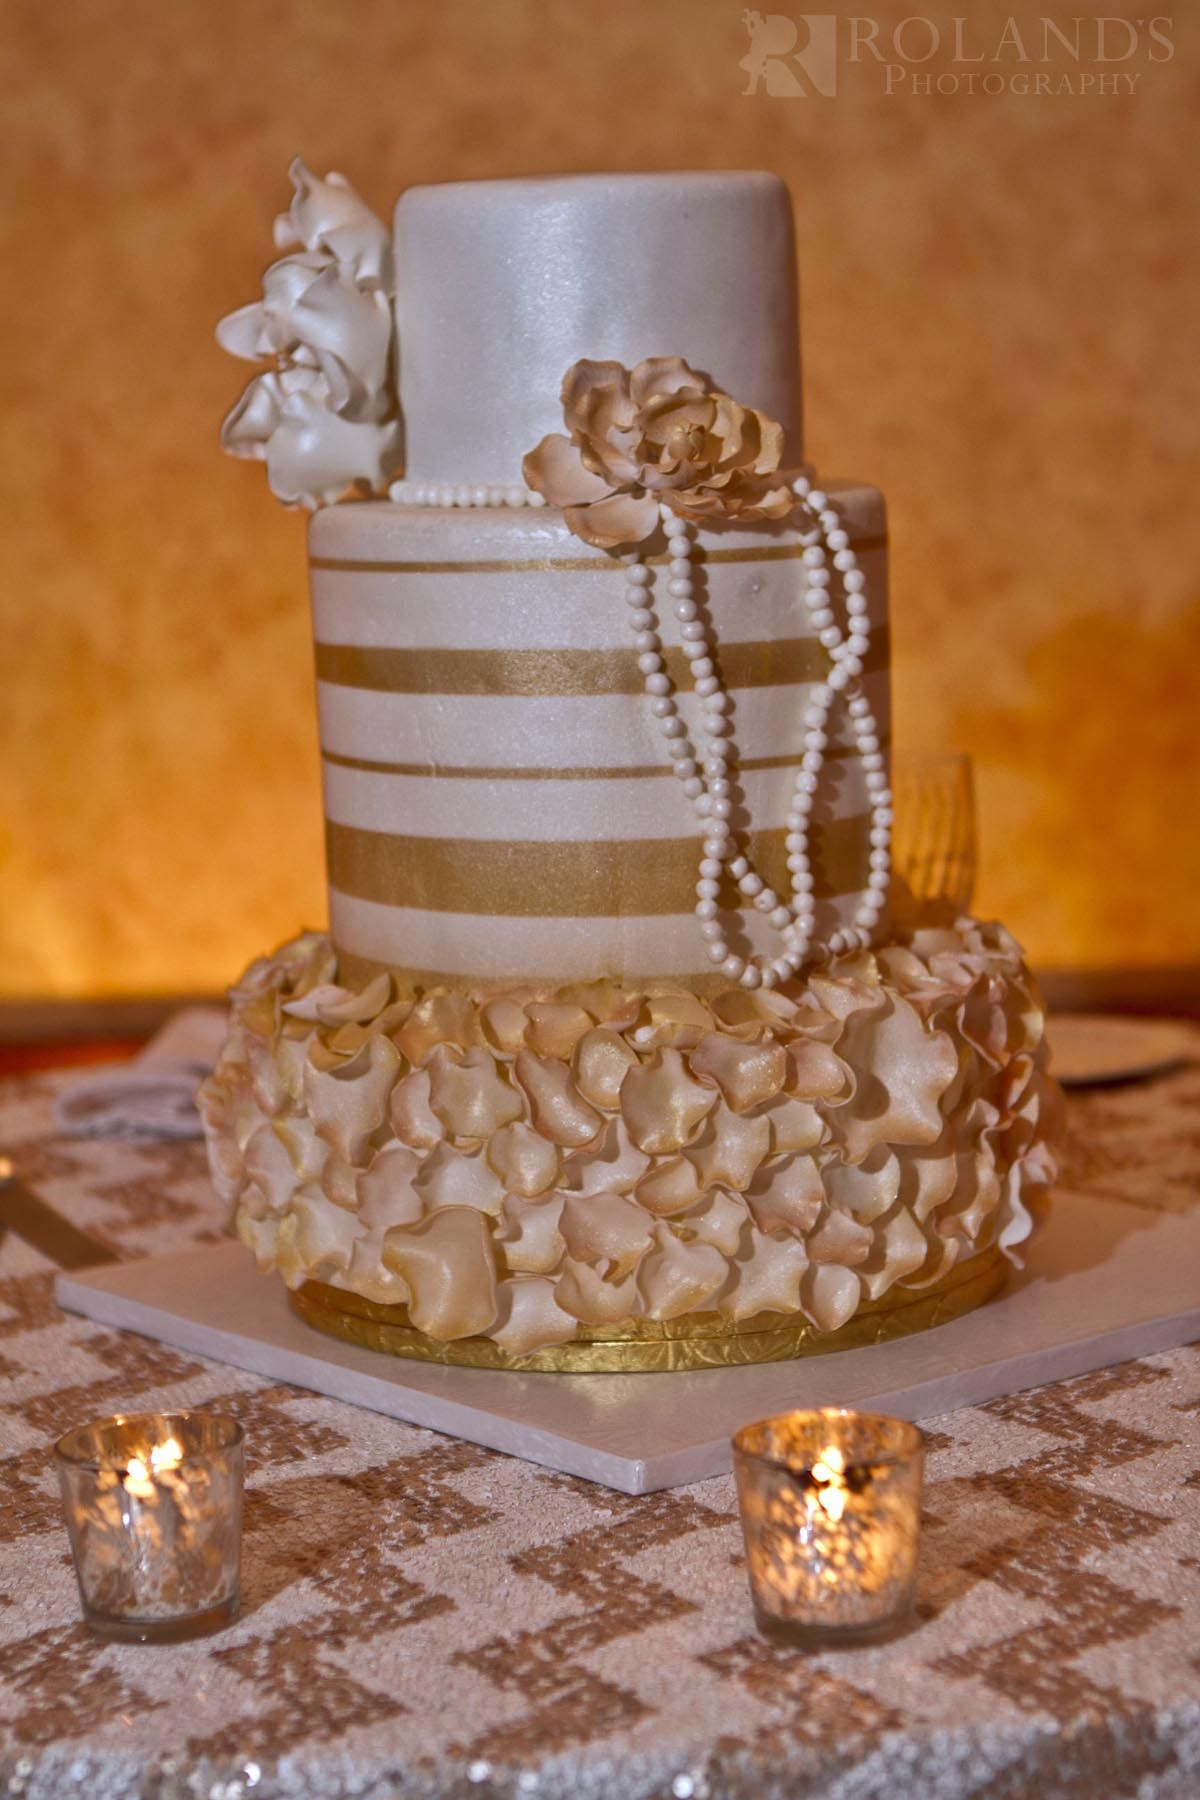 Edwards Epps Wedding Gold and white fondant cake with a